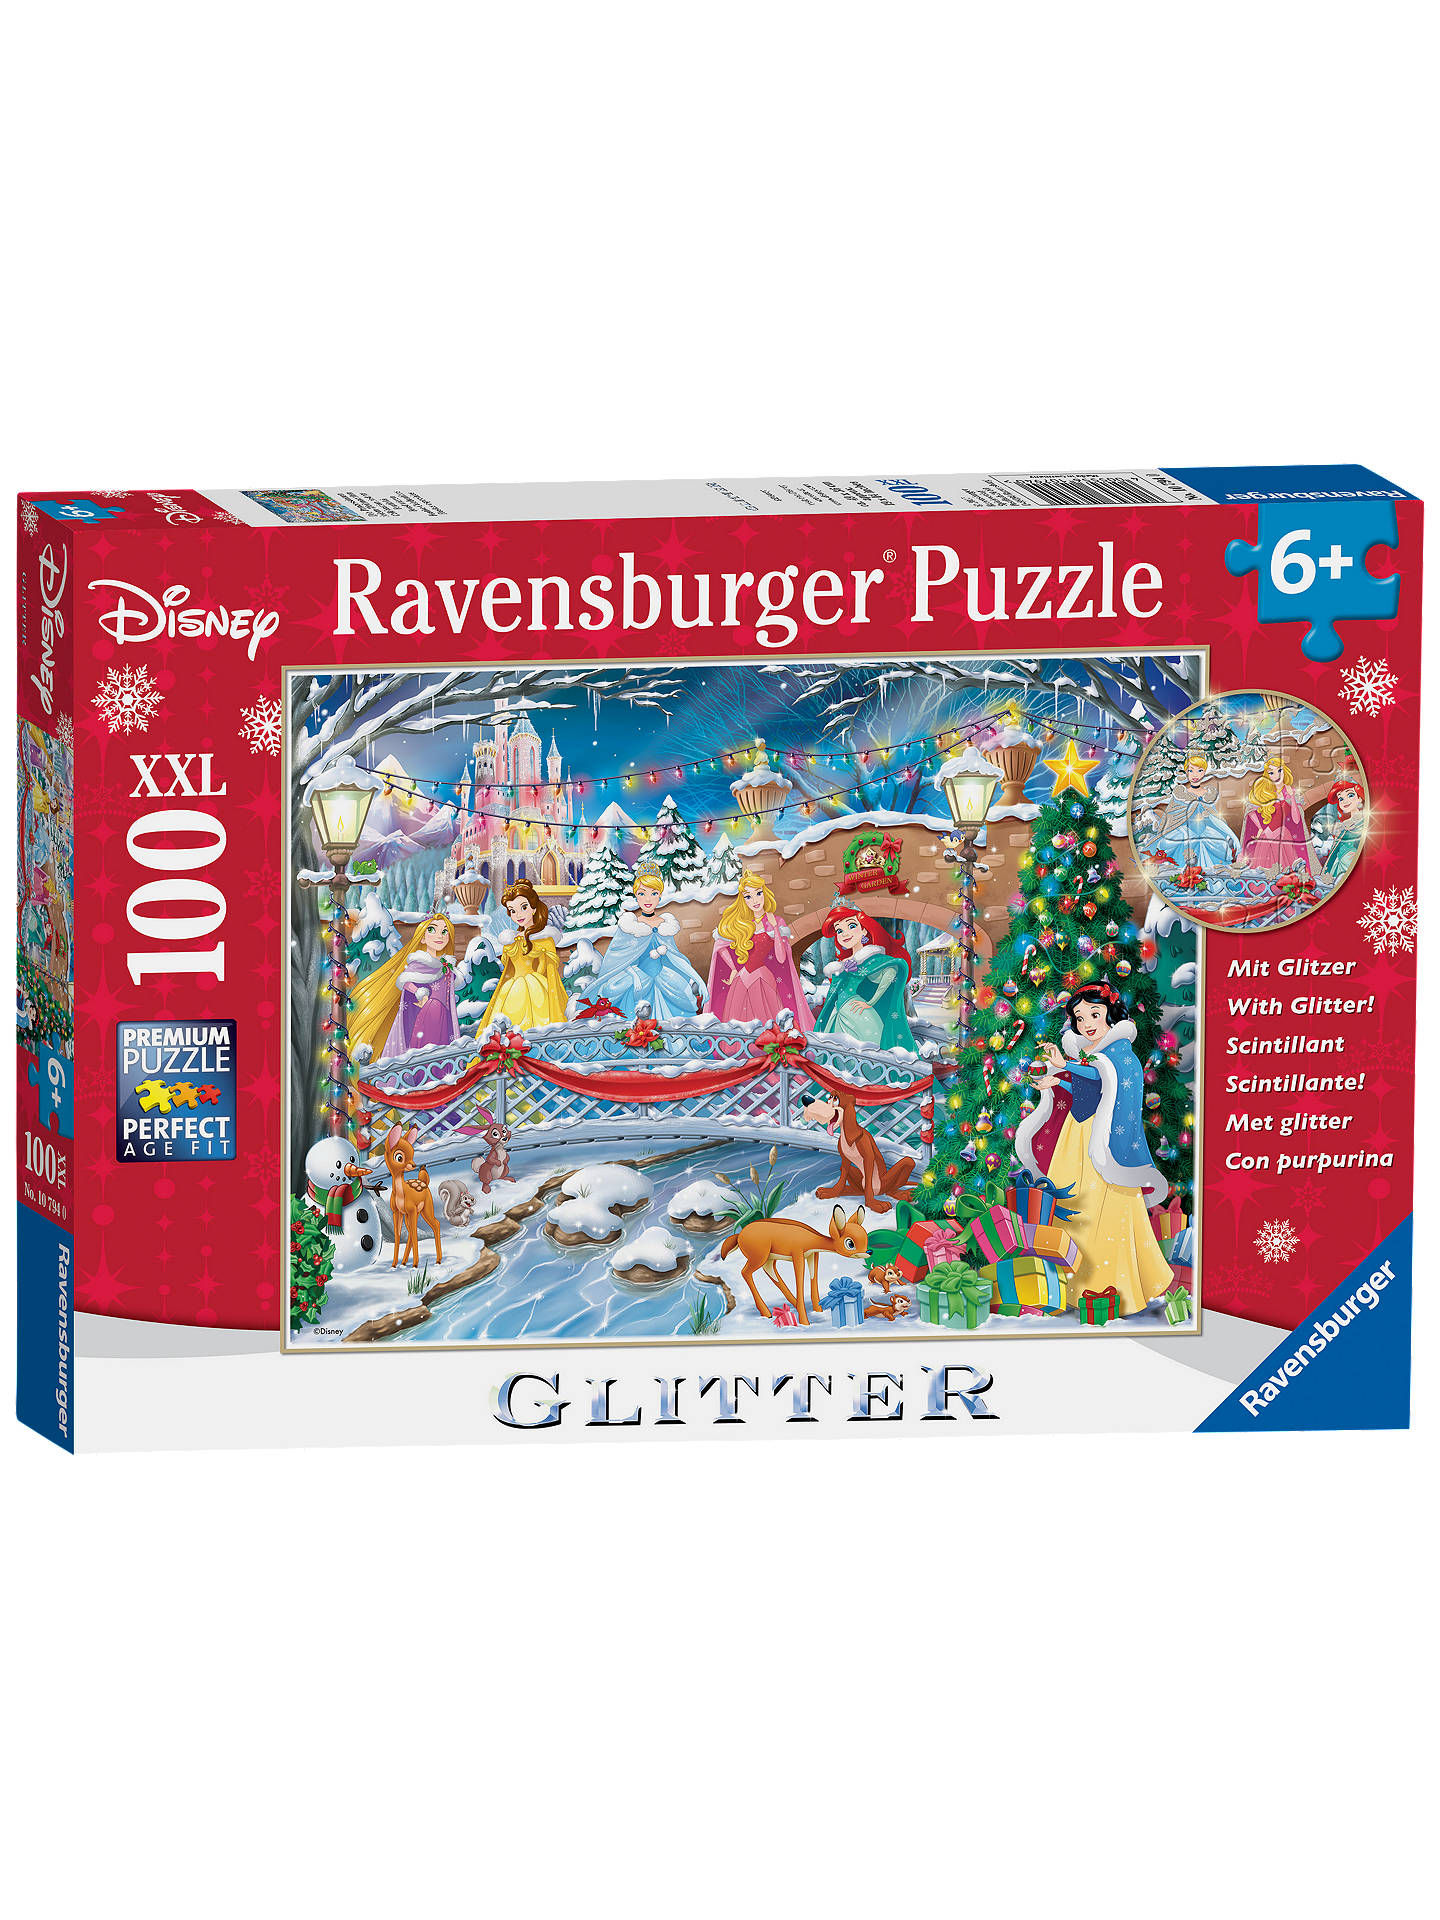 e9d34dc03c1 Buy Ravensburger Disney Princess Glitter Christmas Jigsaw Puzzle